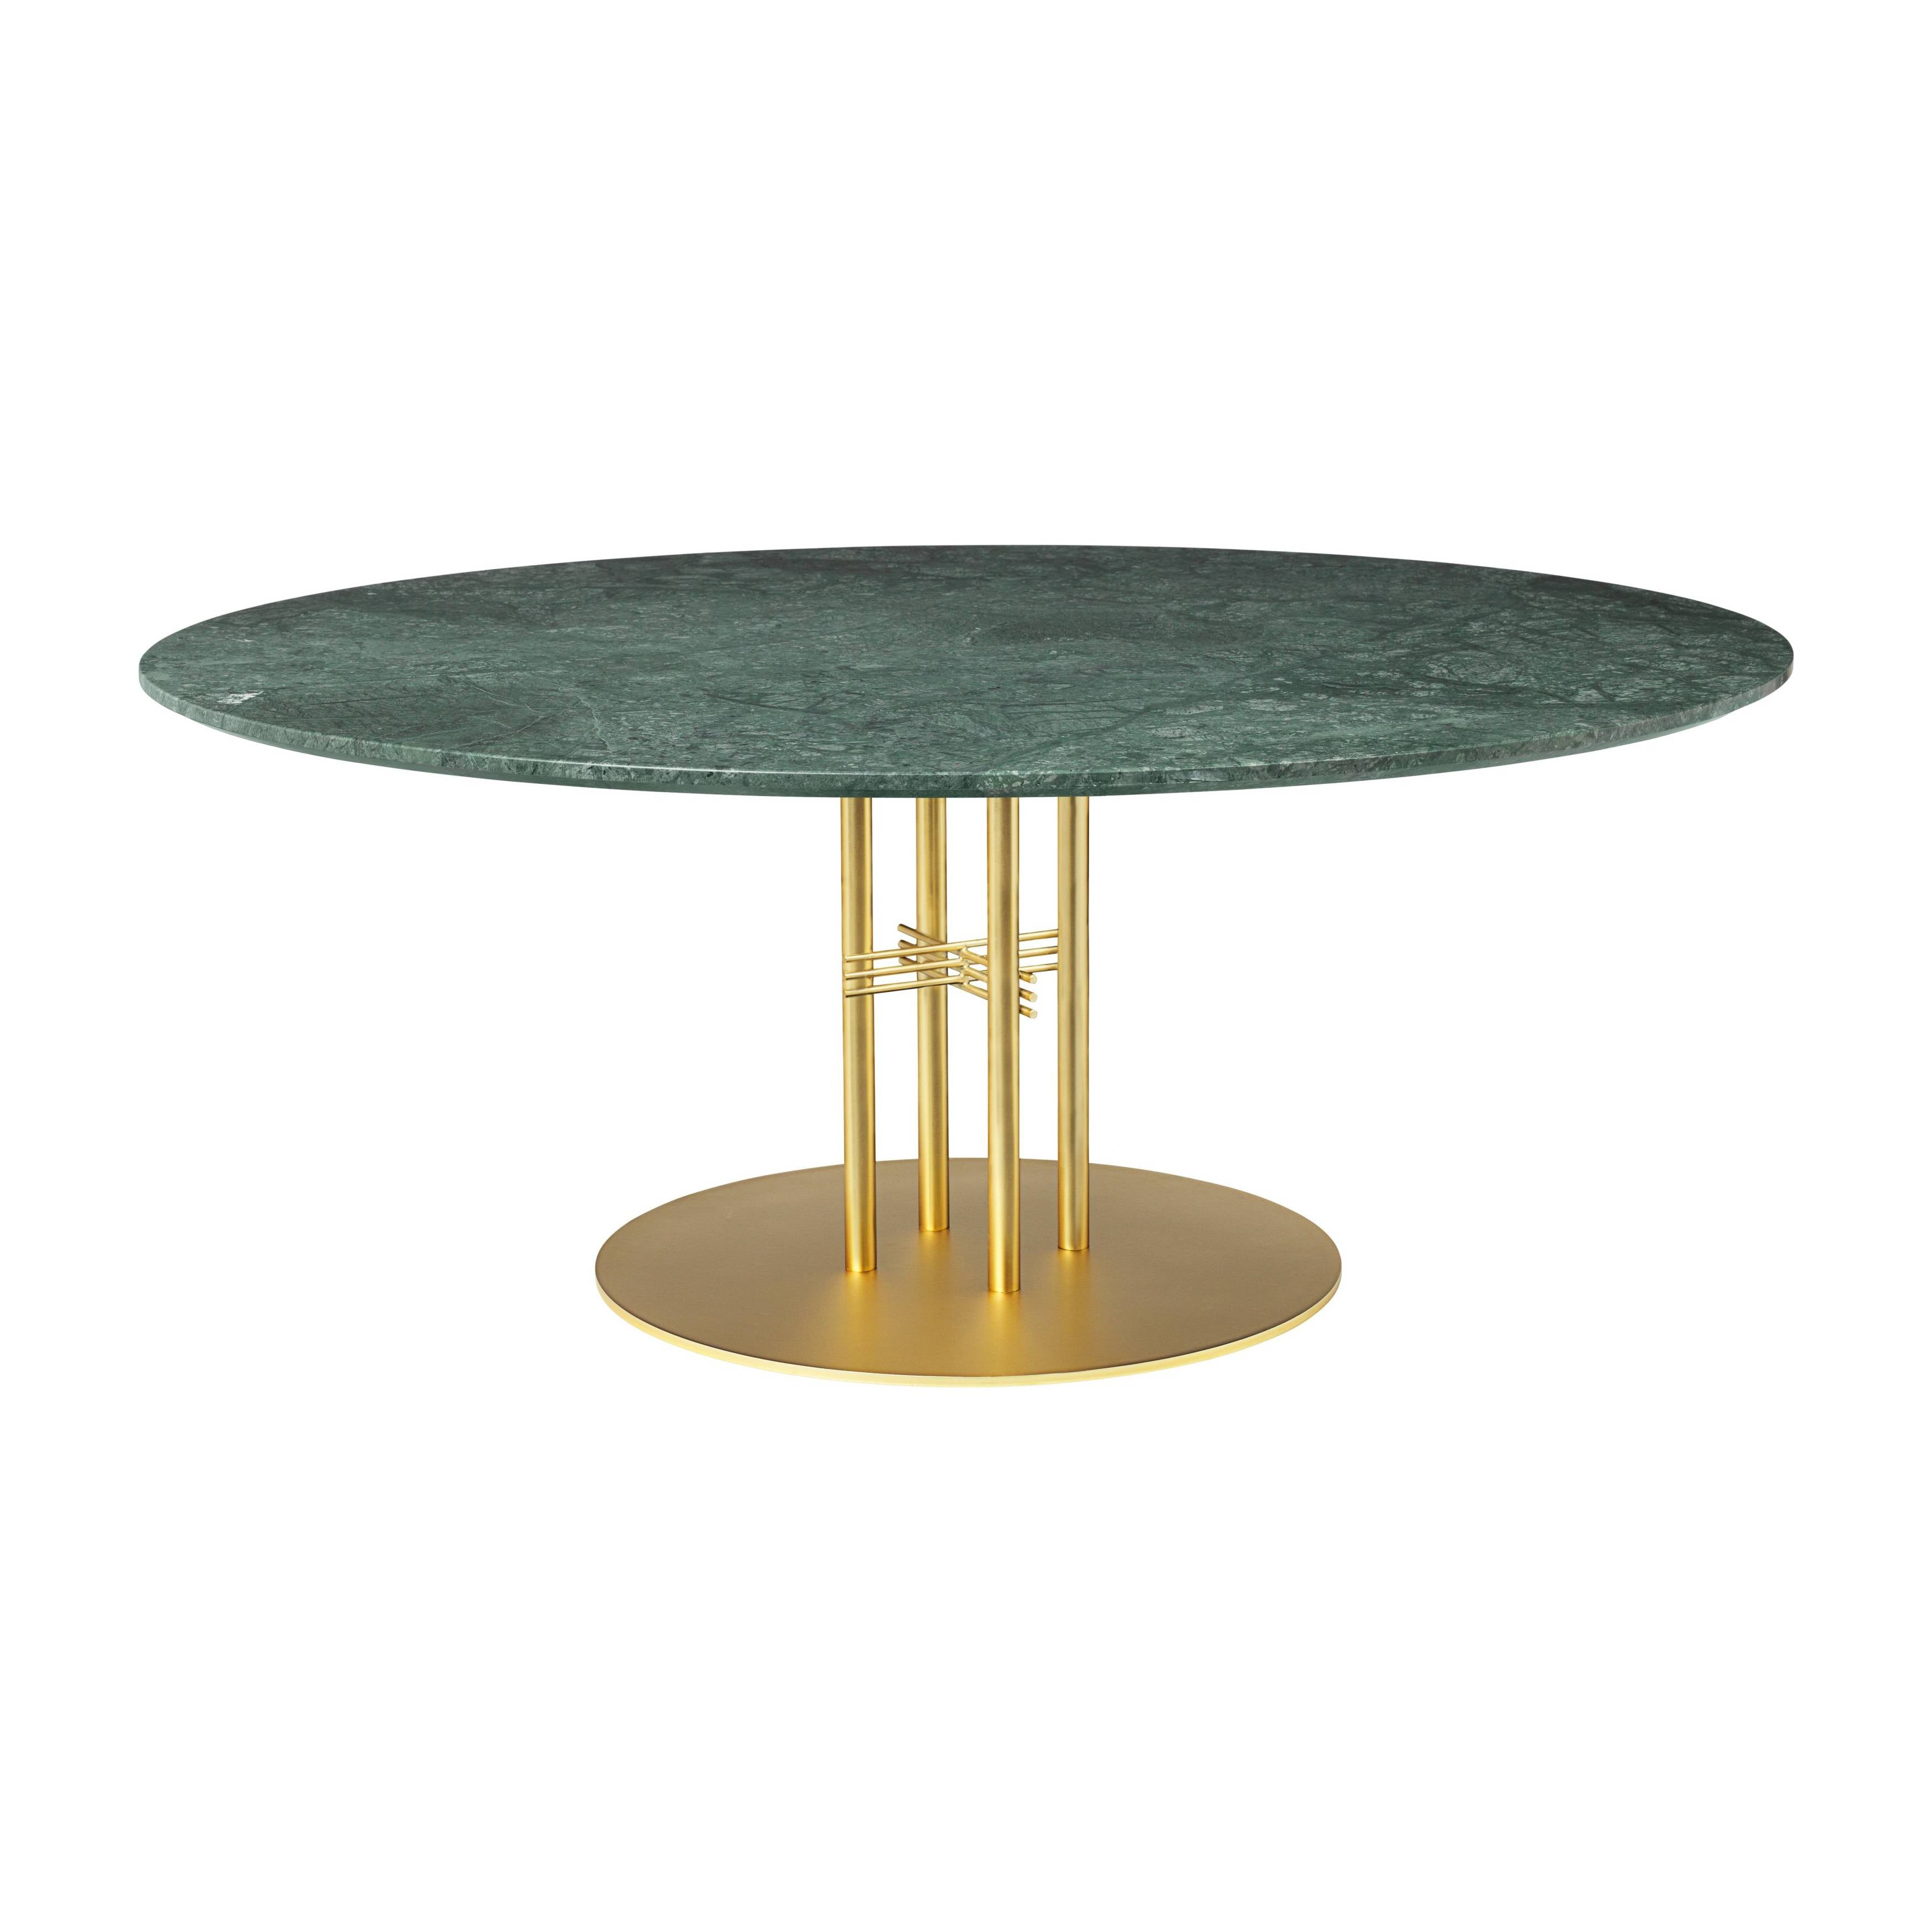 TS Column Lounge Table: Extra Large + Brass Base + Green Gautemala Marble